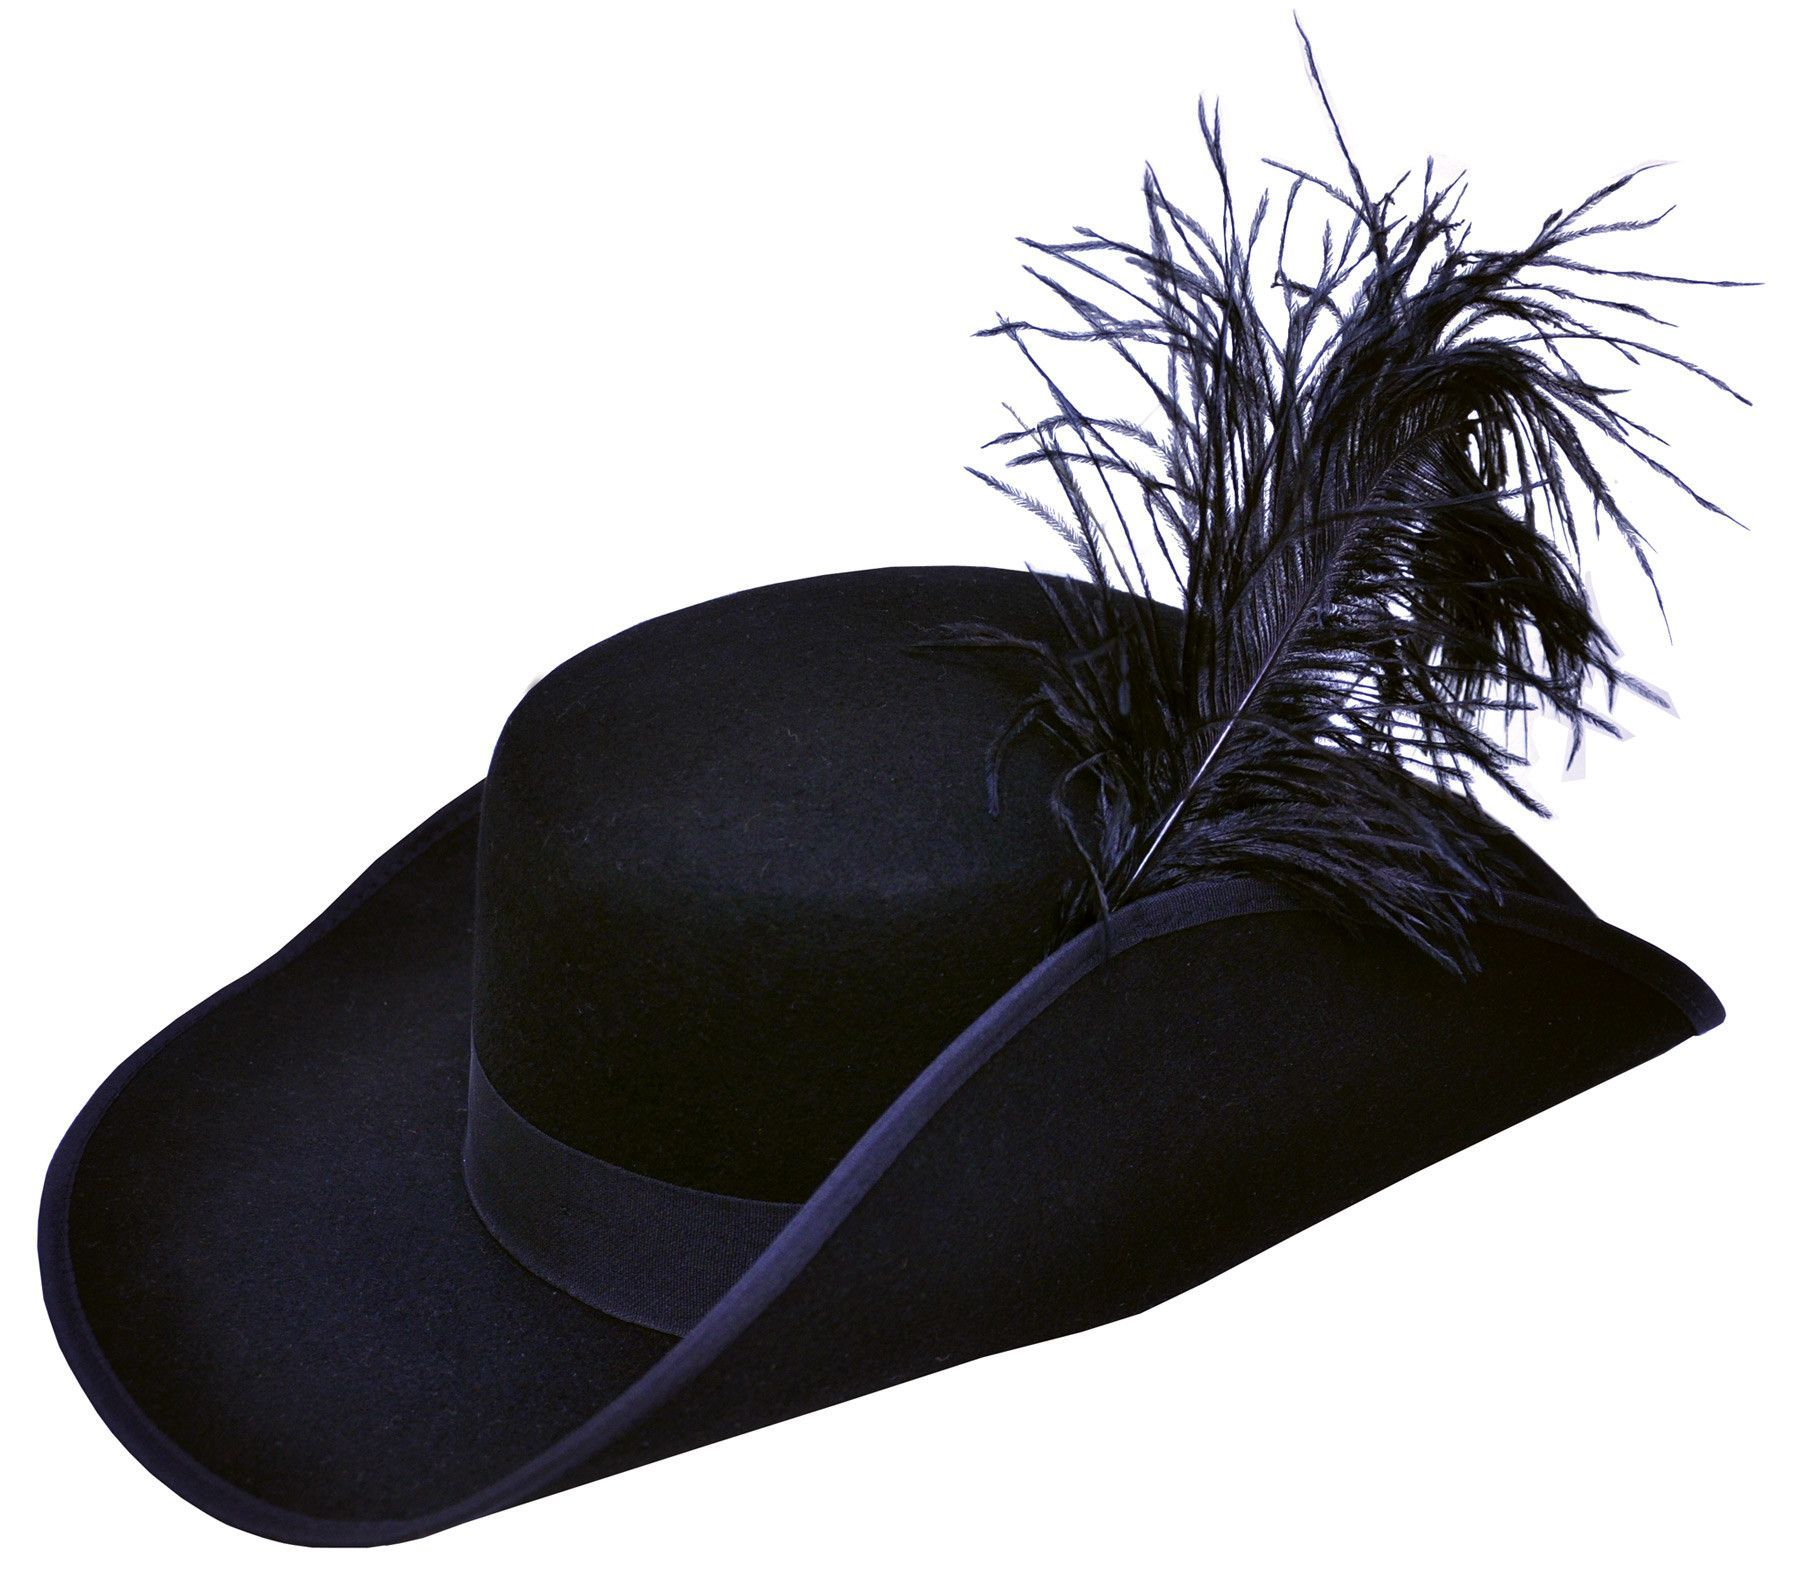 ee4dbe9a03c Cavalier hat quality